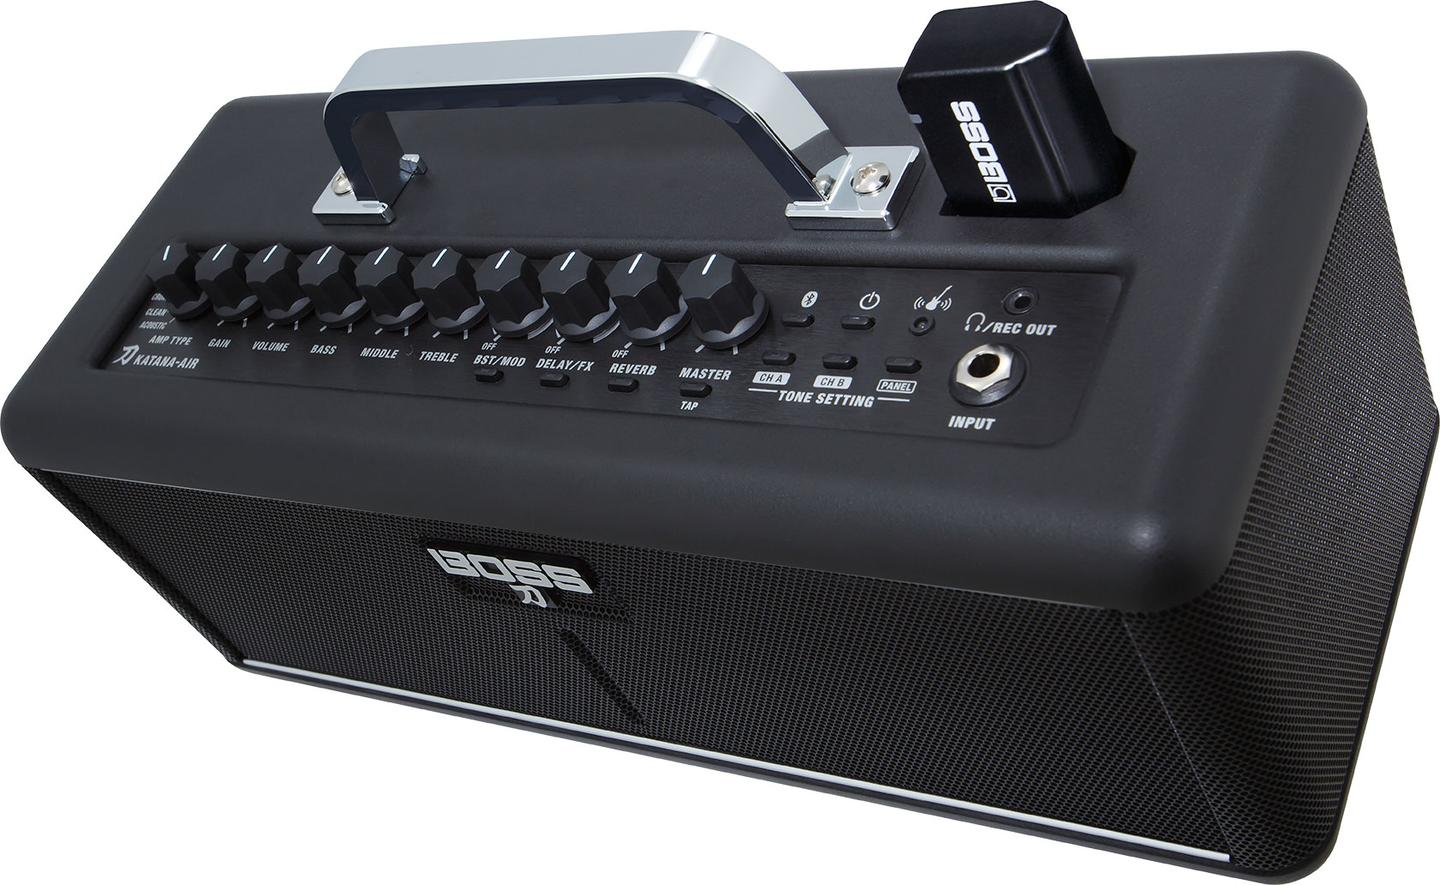 The transmitter's Li-ion battery is charged by plugging the device into the Air amp